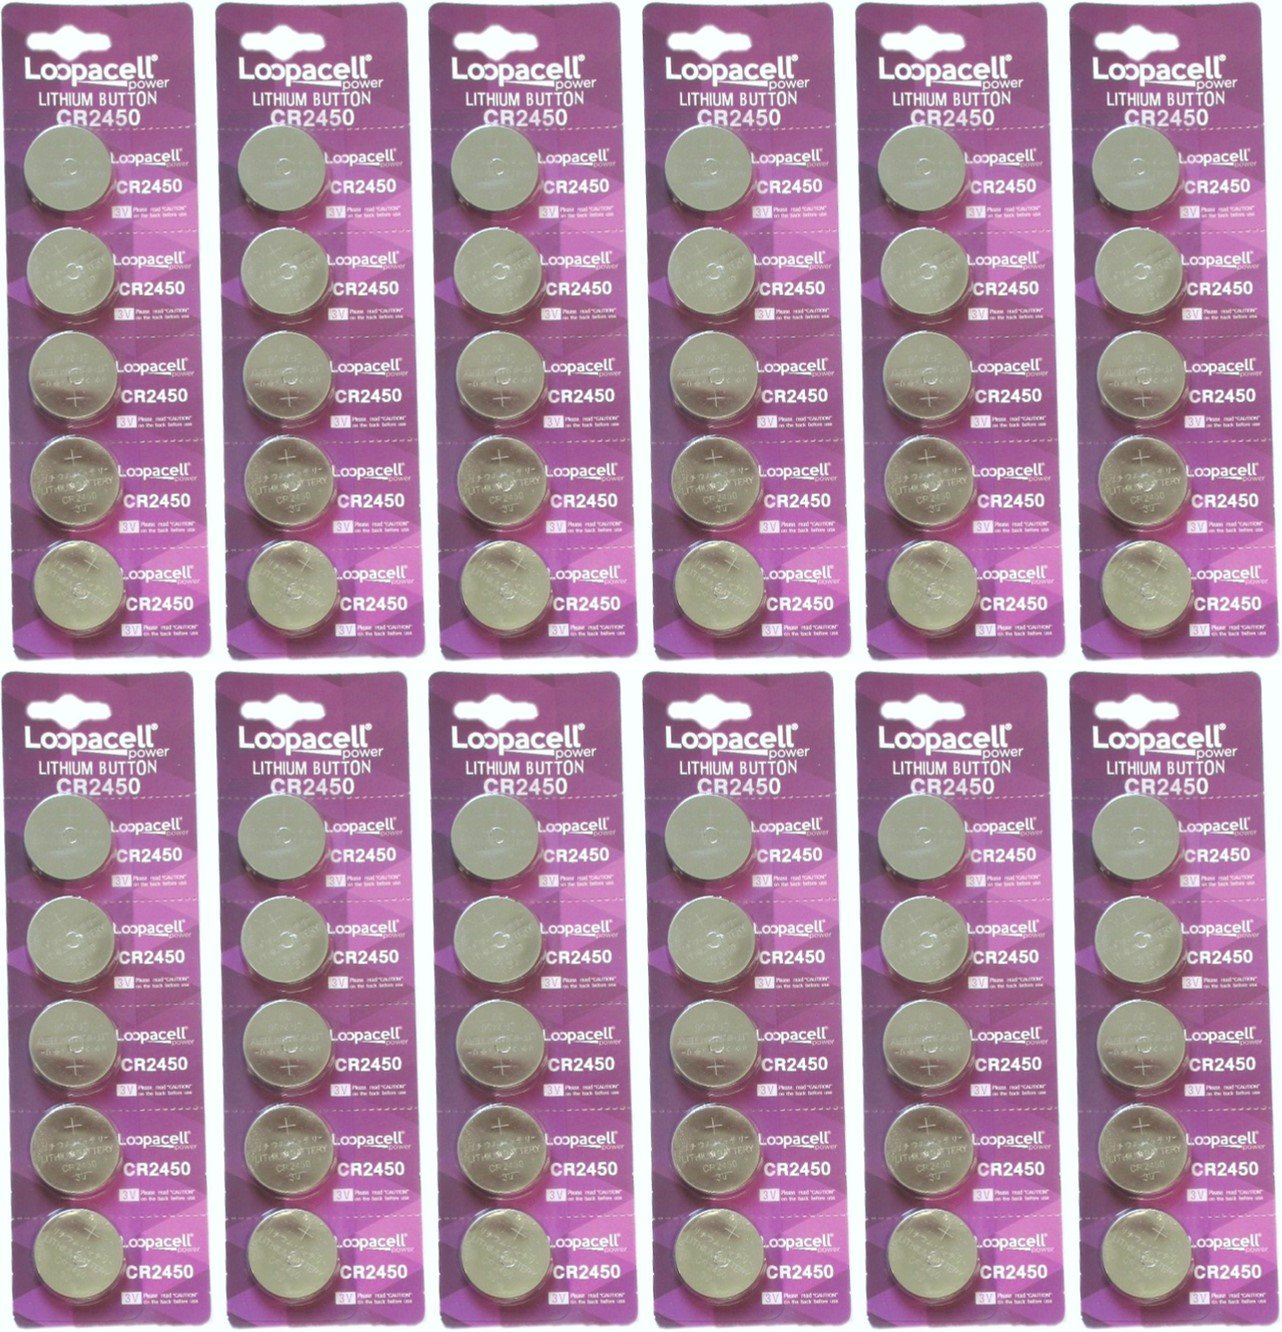 60 Pcs 2450 Batteries (CR2450/ DL2450/ E-CR2450) Lithium 3v (12 Packs of 5) by Loopacell by LOOPACELL